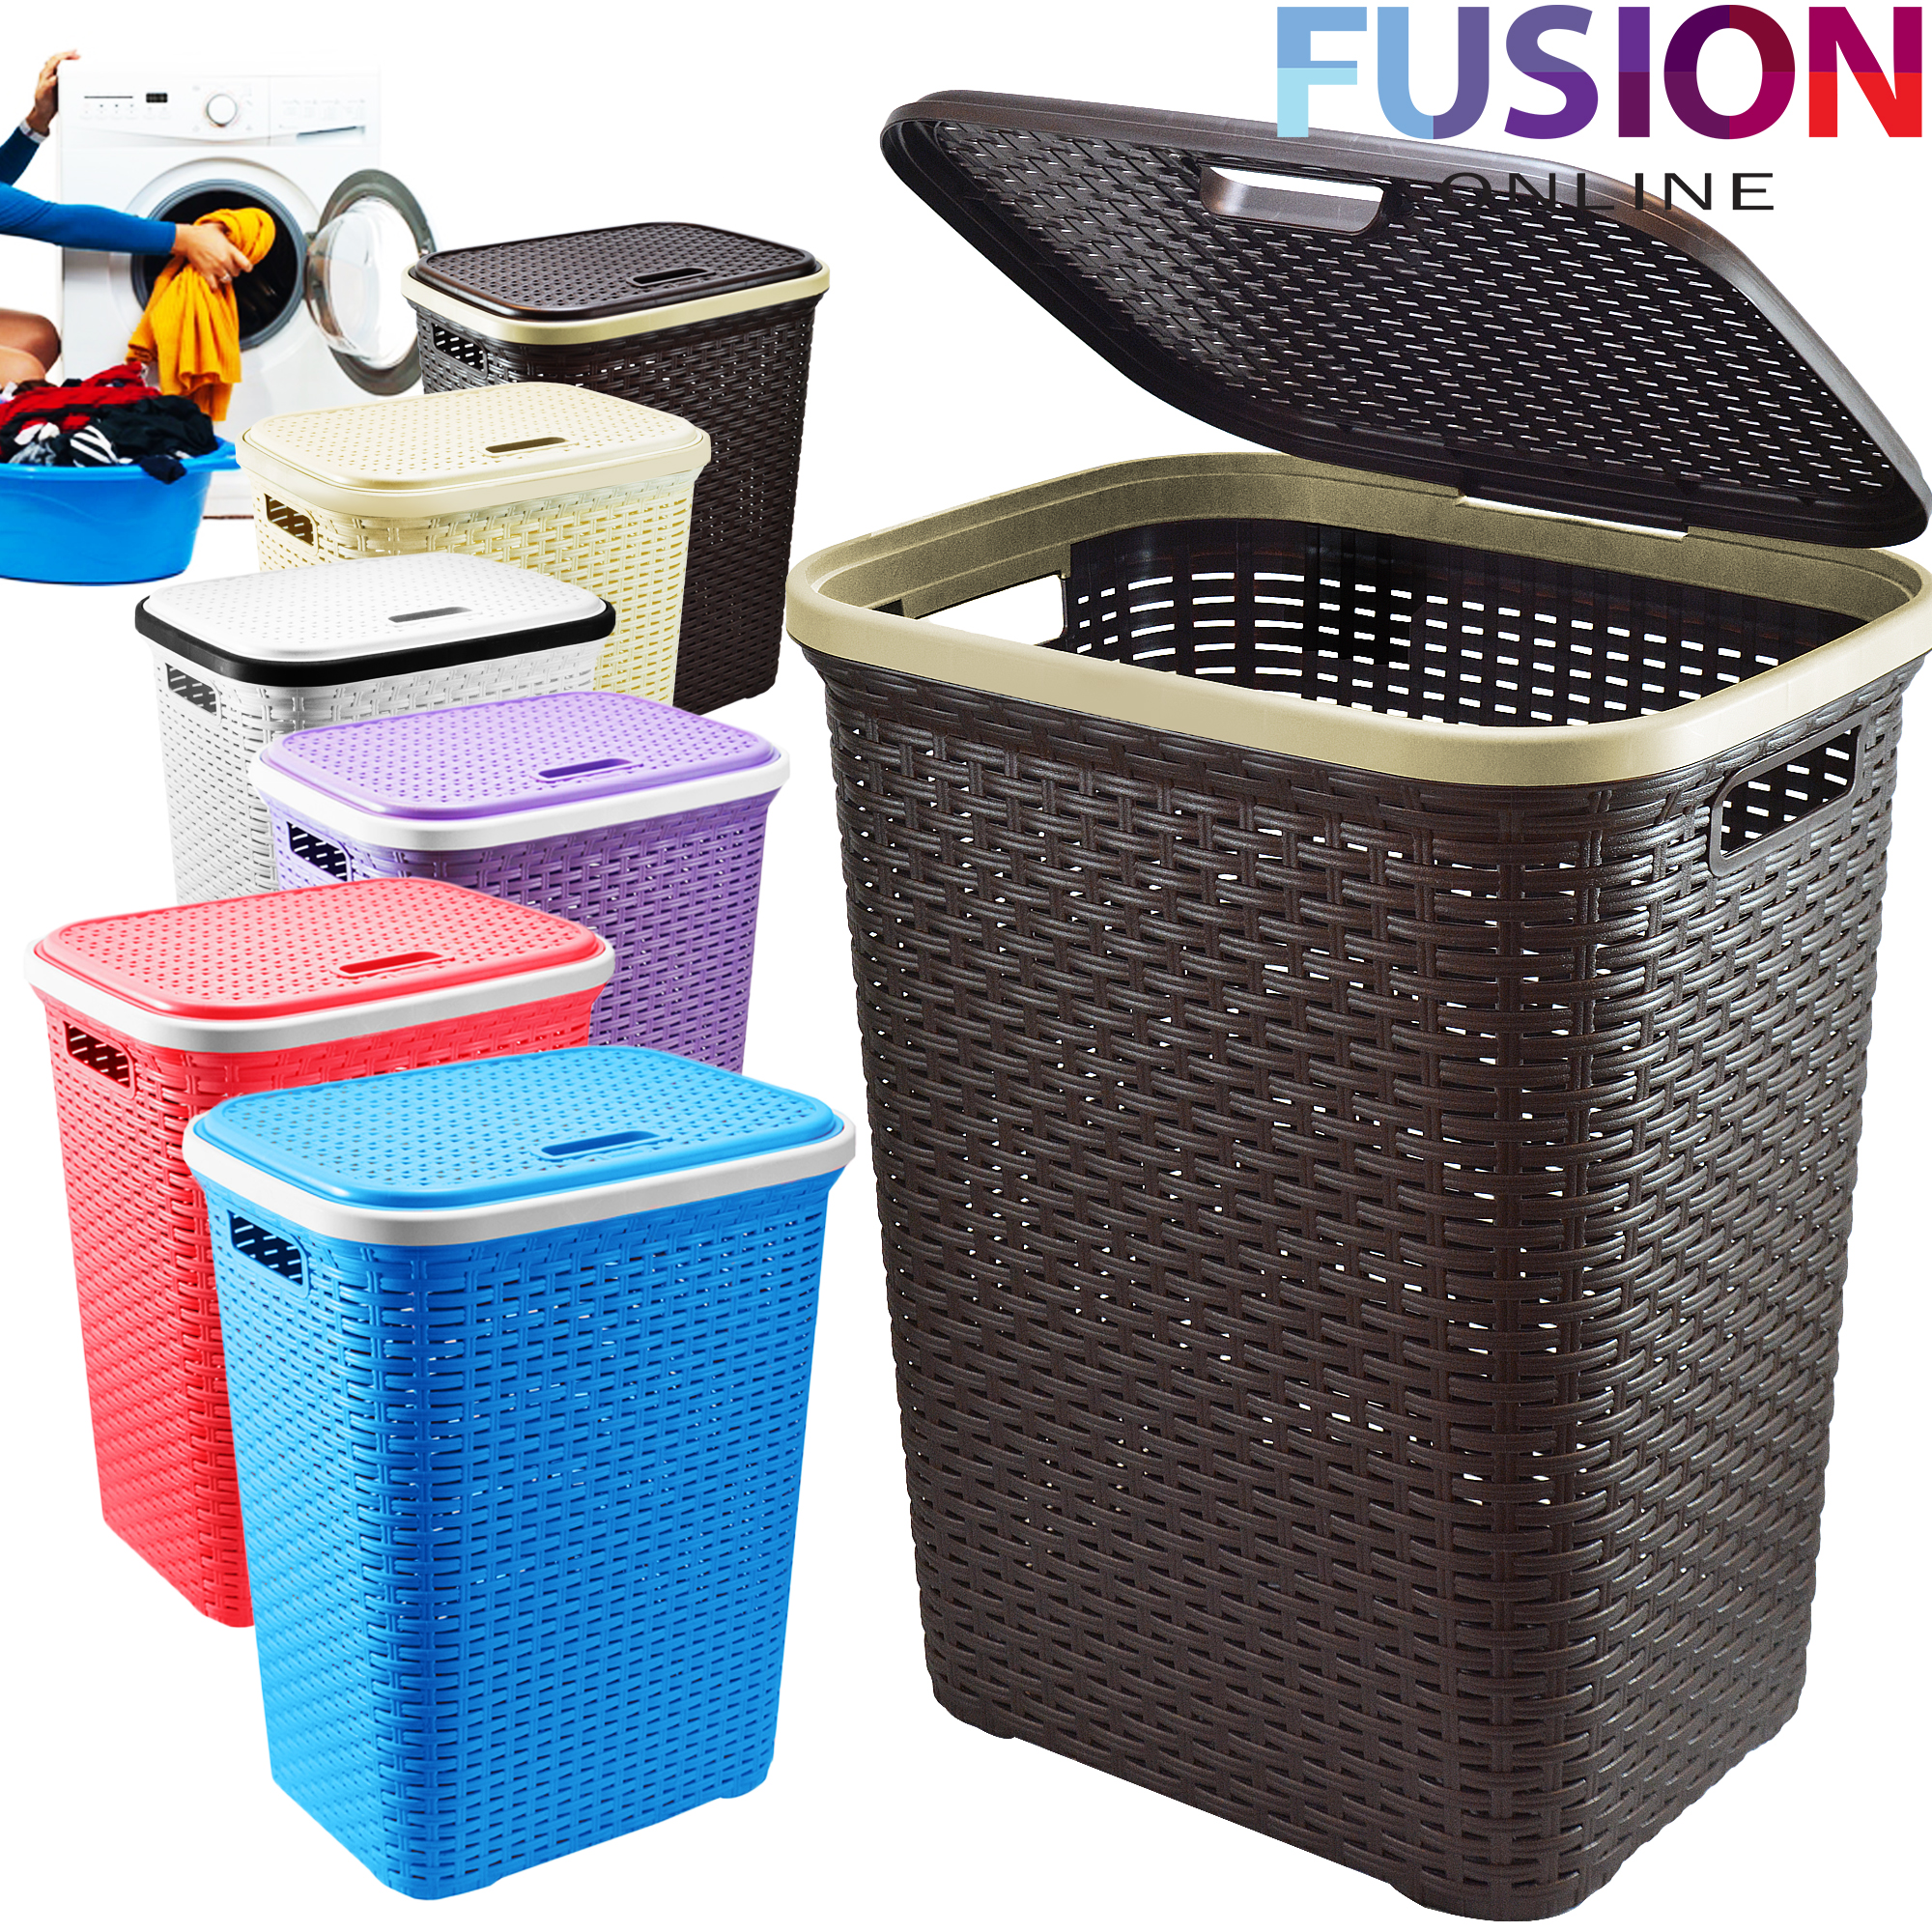 Large Laundry Basket Washing Clothes Storage Hamper Rattan Style Plastic Basket Ebay